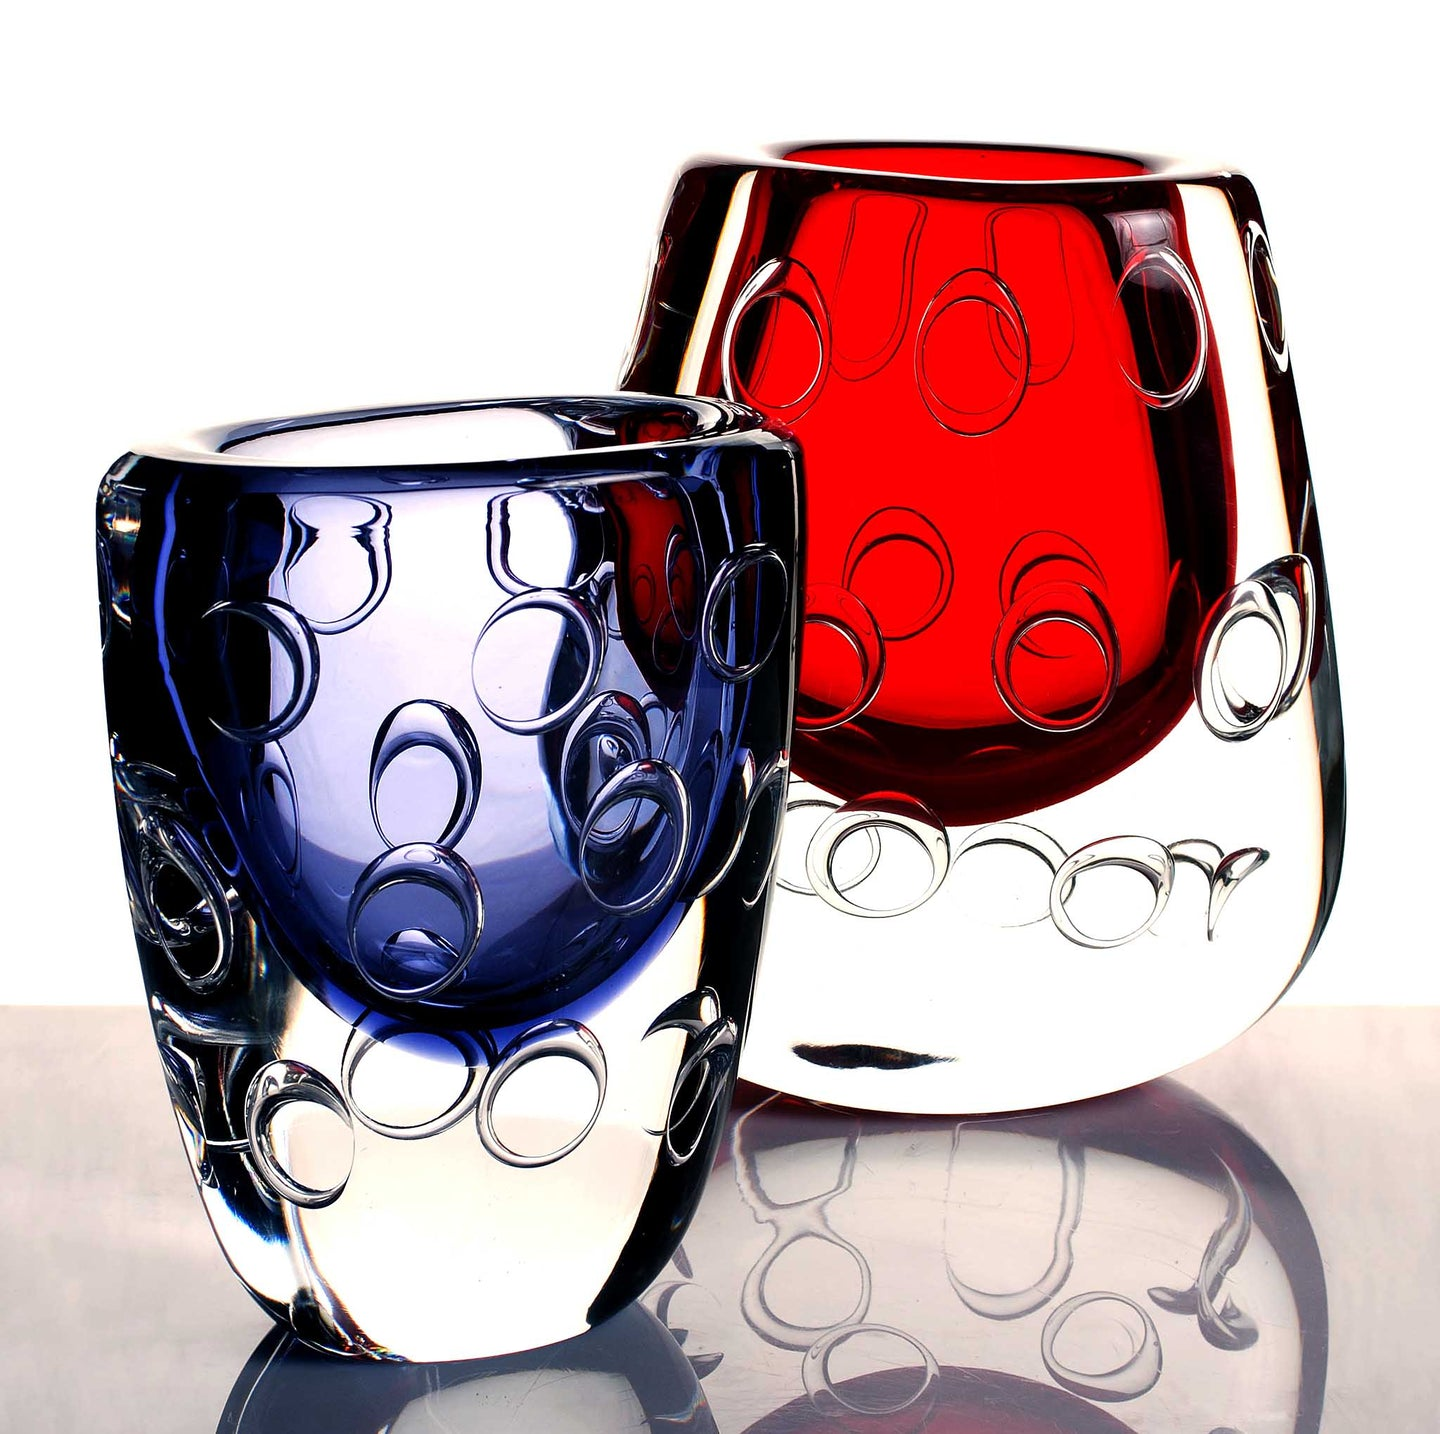 red and blue murano glass vase